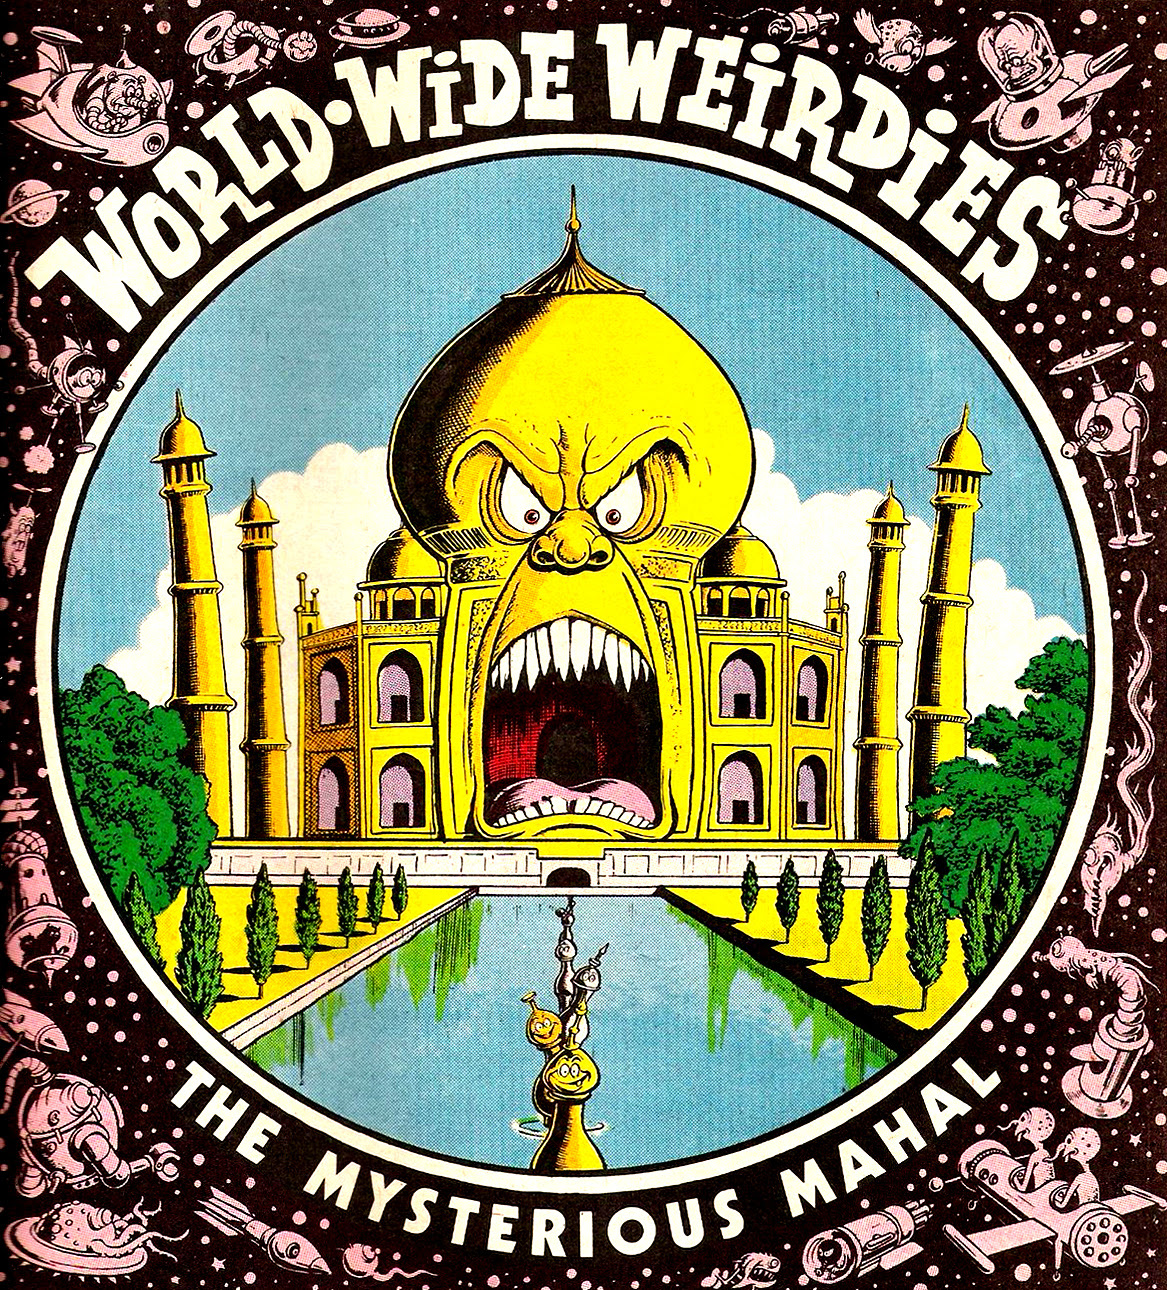 Ken Reid - World Wide Weirdies 17